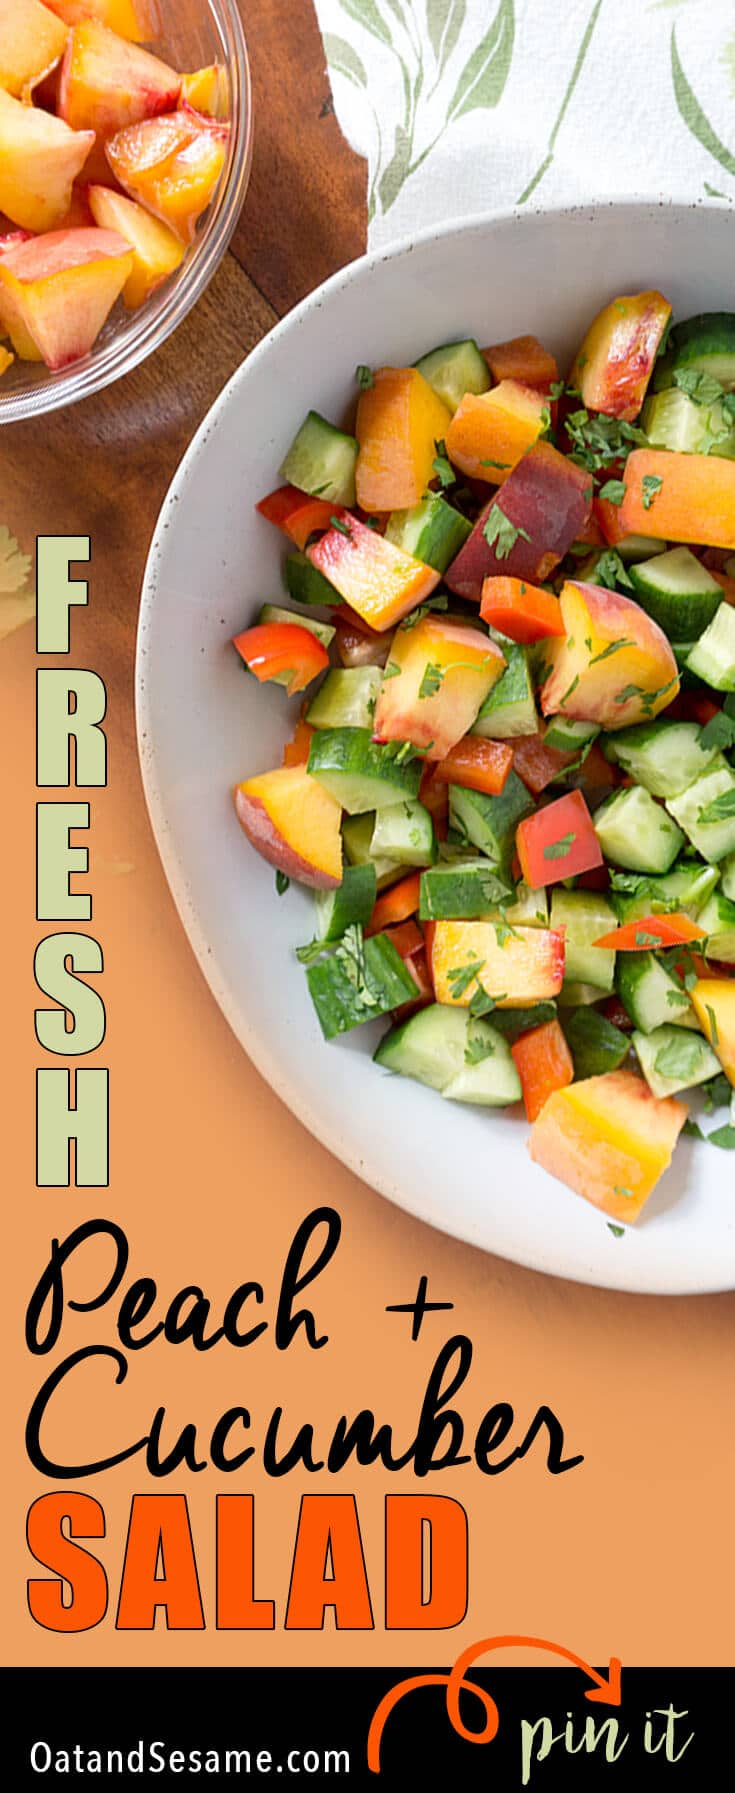 This easy Peach + Cucumber Salad incorporates all the wonderful produce from your local farmer's market! Fresh cucumbers, red peppers, peaches and fresh herbs! Summer flavors that speak for themselves without any fuss. | GLUTEN FREE | VEGETARIAN | VEGAN | PLANT BASED | PEACHES | SALAD | HEALTHY | Recipe at OatandSesame.com